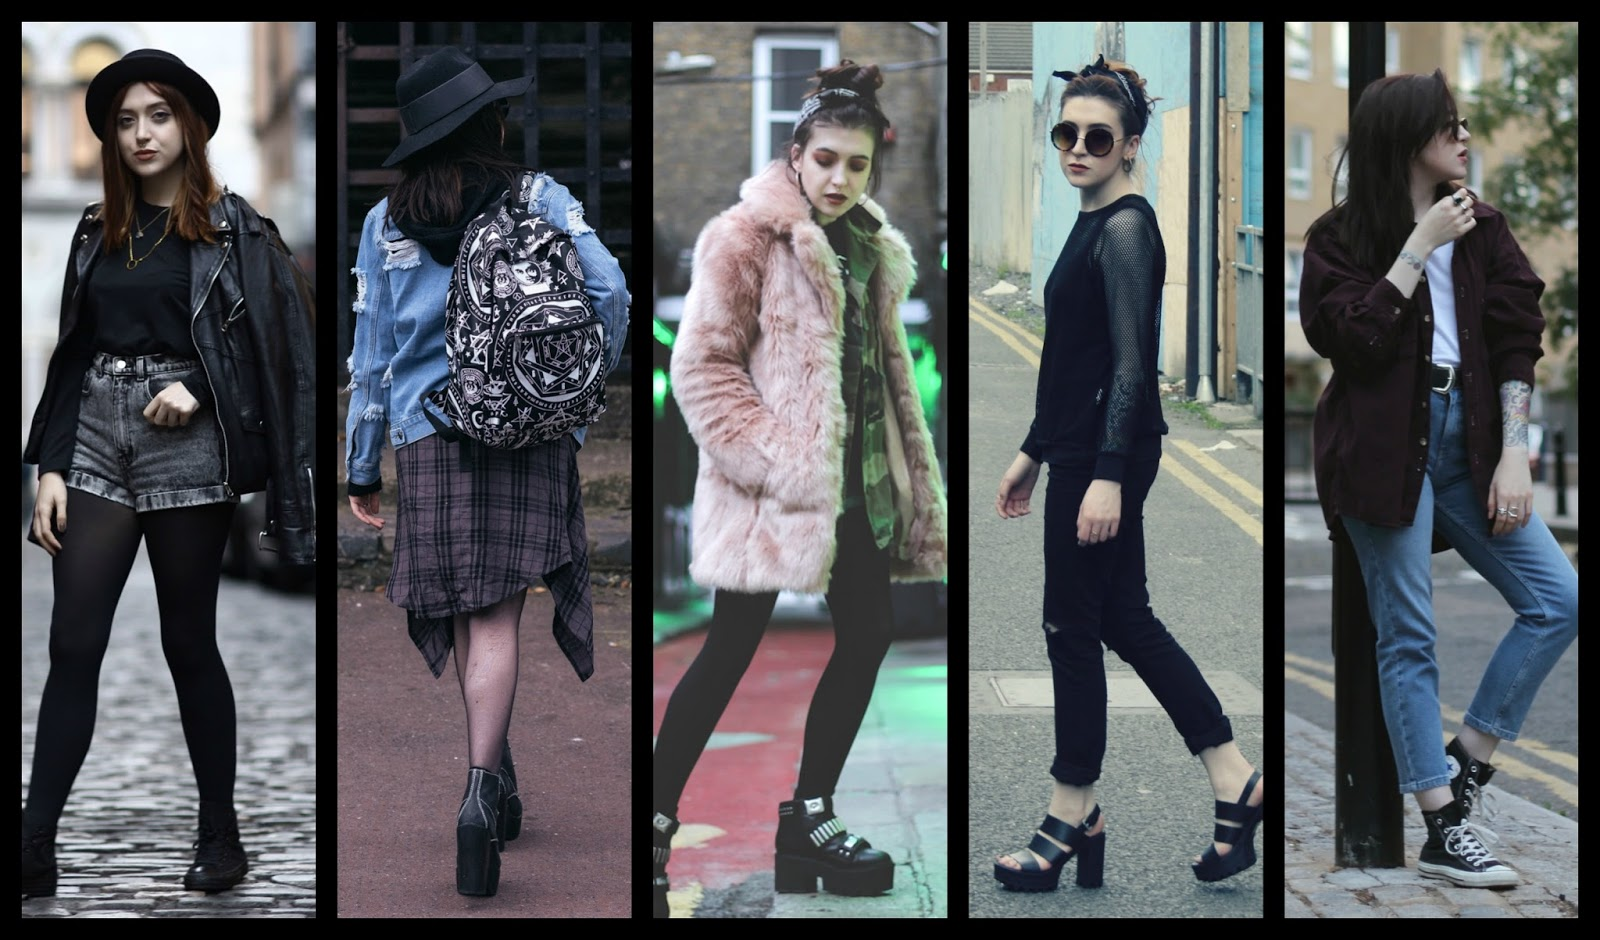 My Top 10 Tips On How To Find Your Personal Style